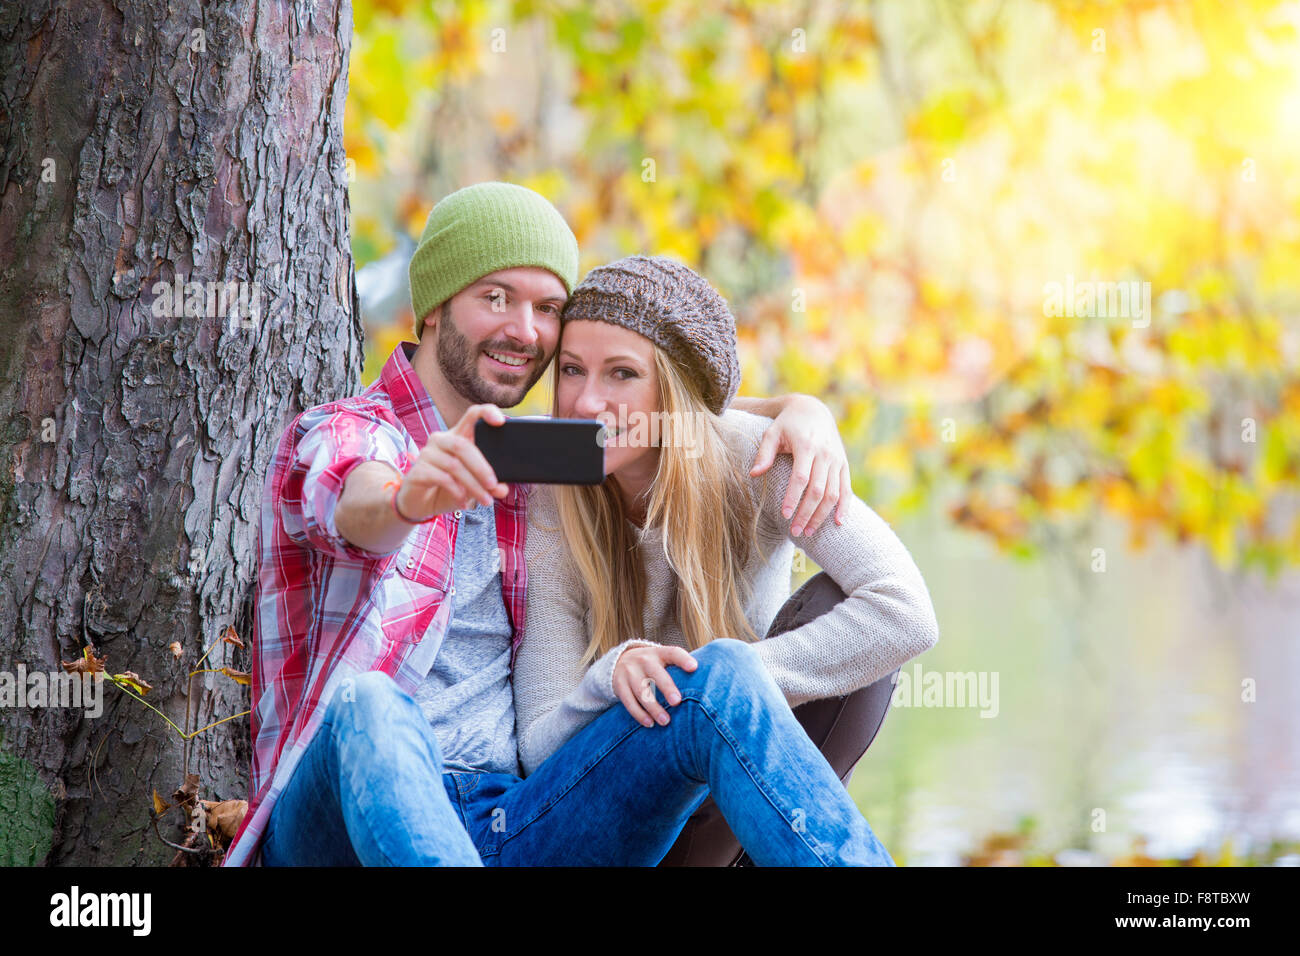 Young couple dating in forest - Stock Image